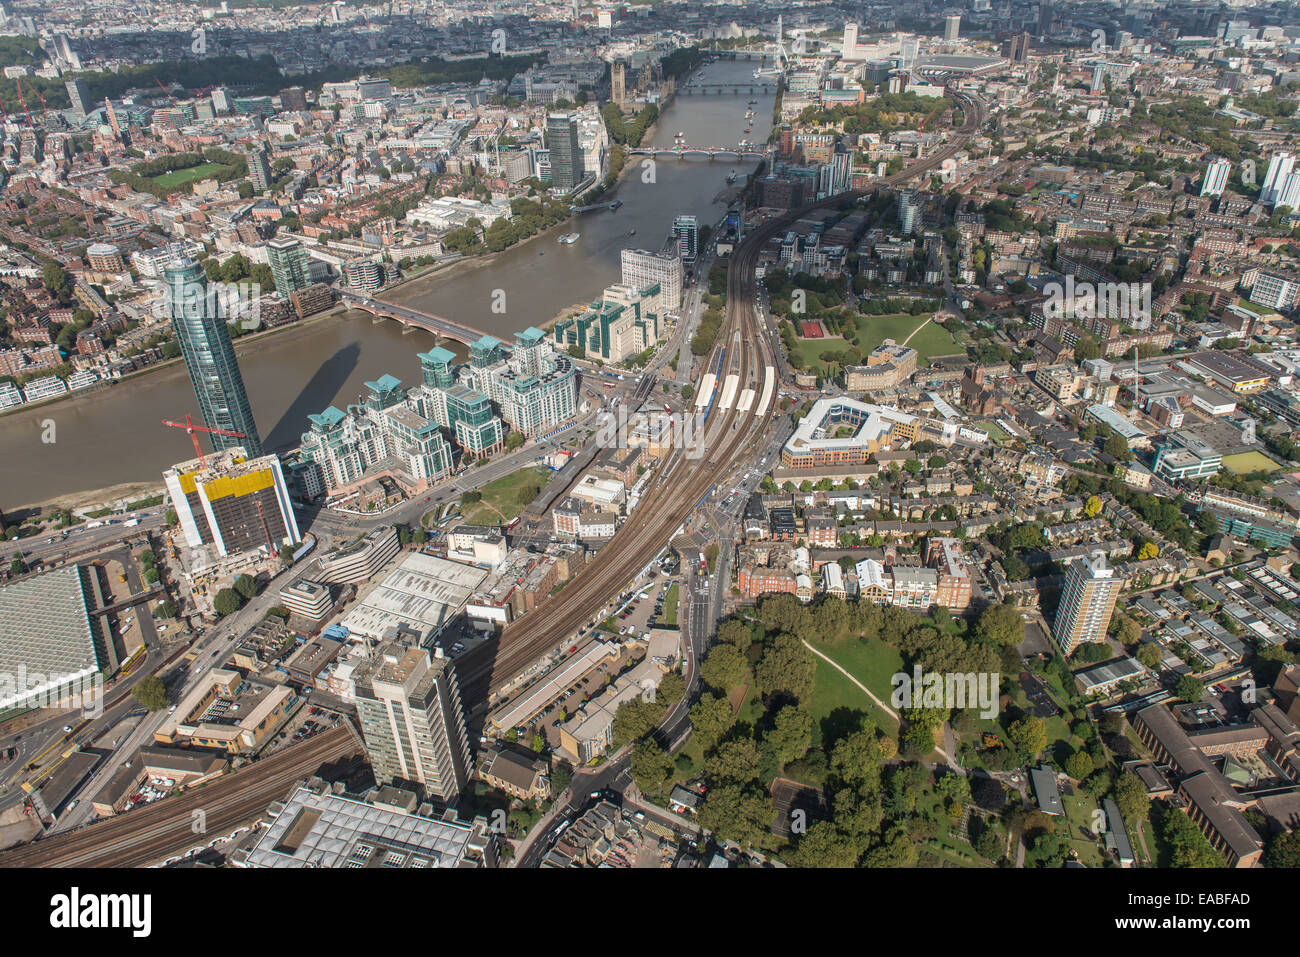 An aerial view from Nine Elms in London looking over Vauxhall Bridge towards the Houses of Parliament - Stock Image